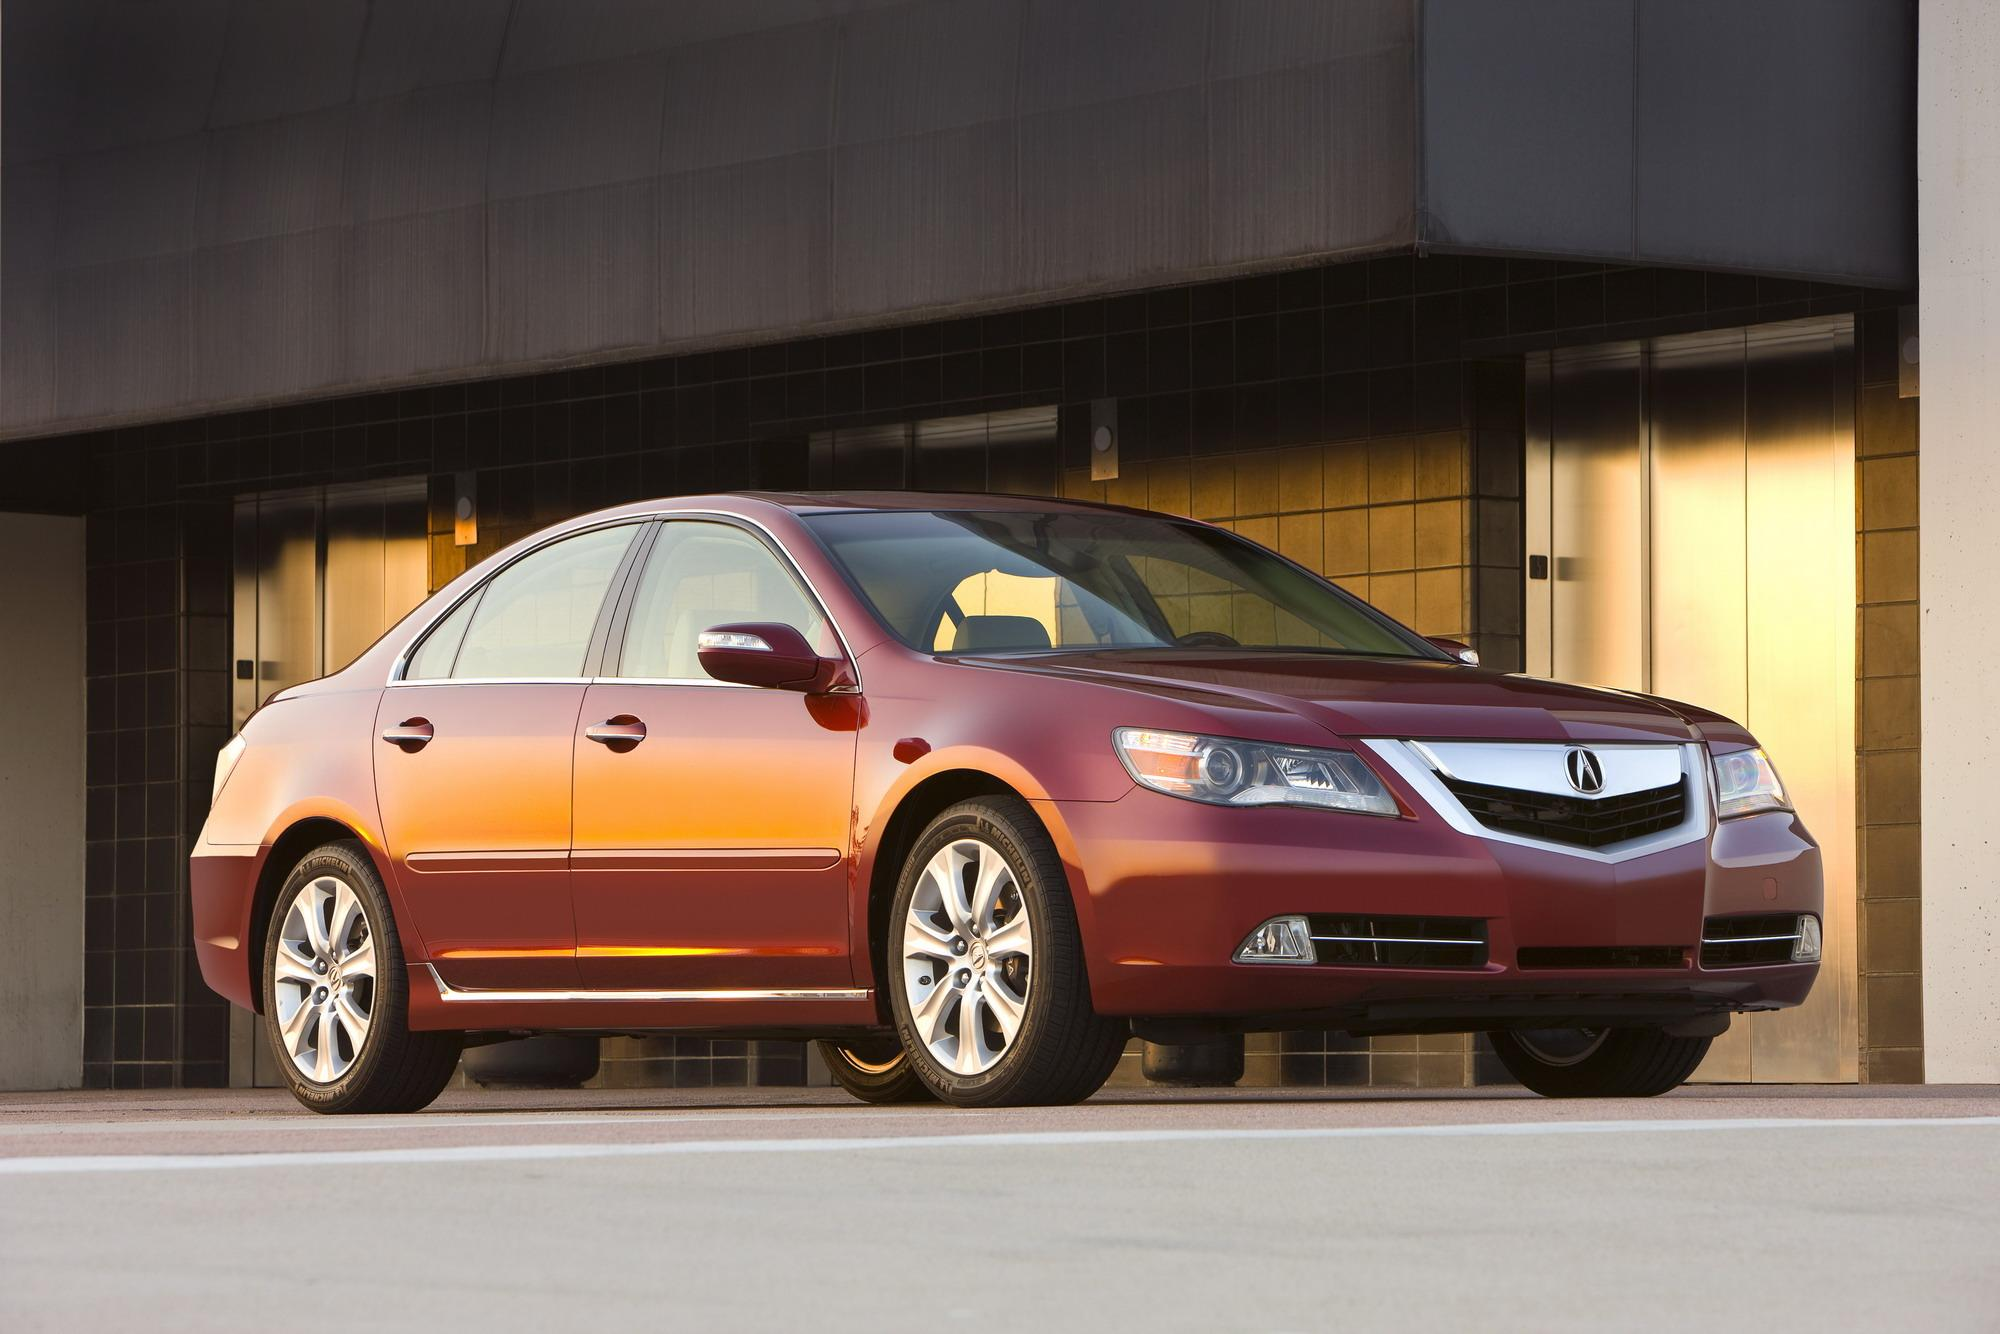 photo car awd info review rl original acura road news and photos sh s driver tl reviews manual test